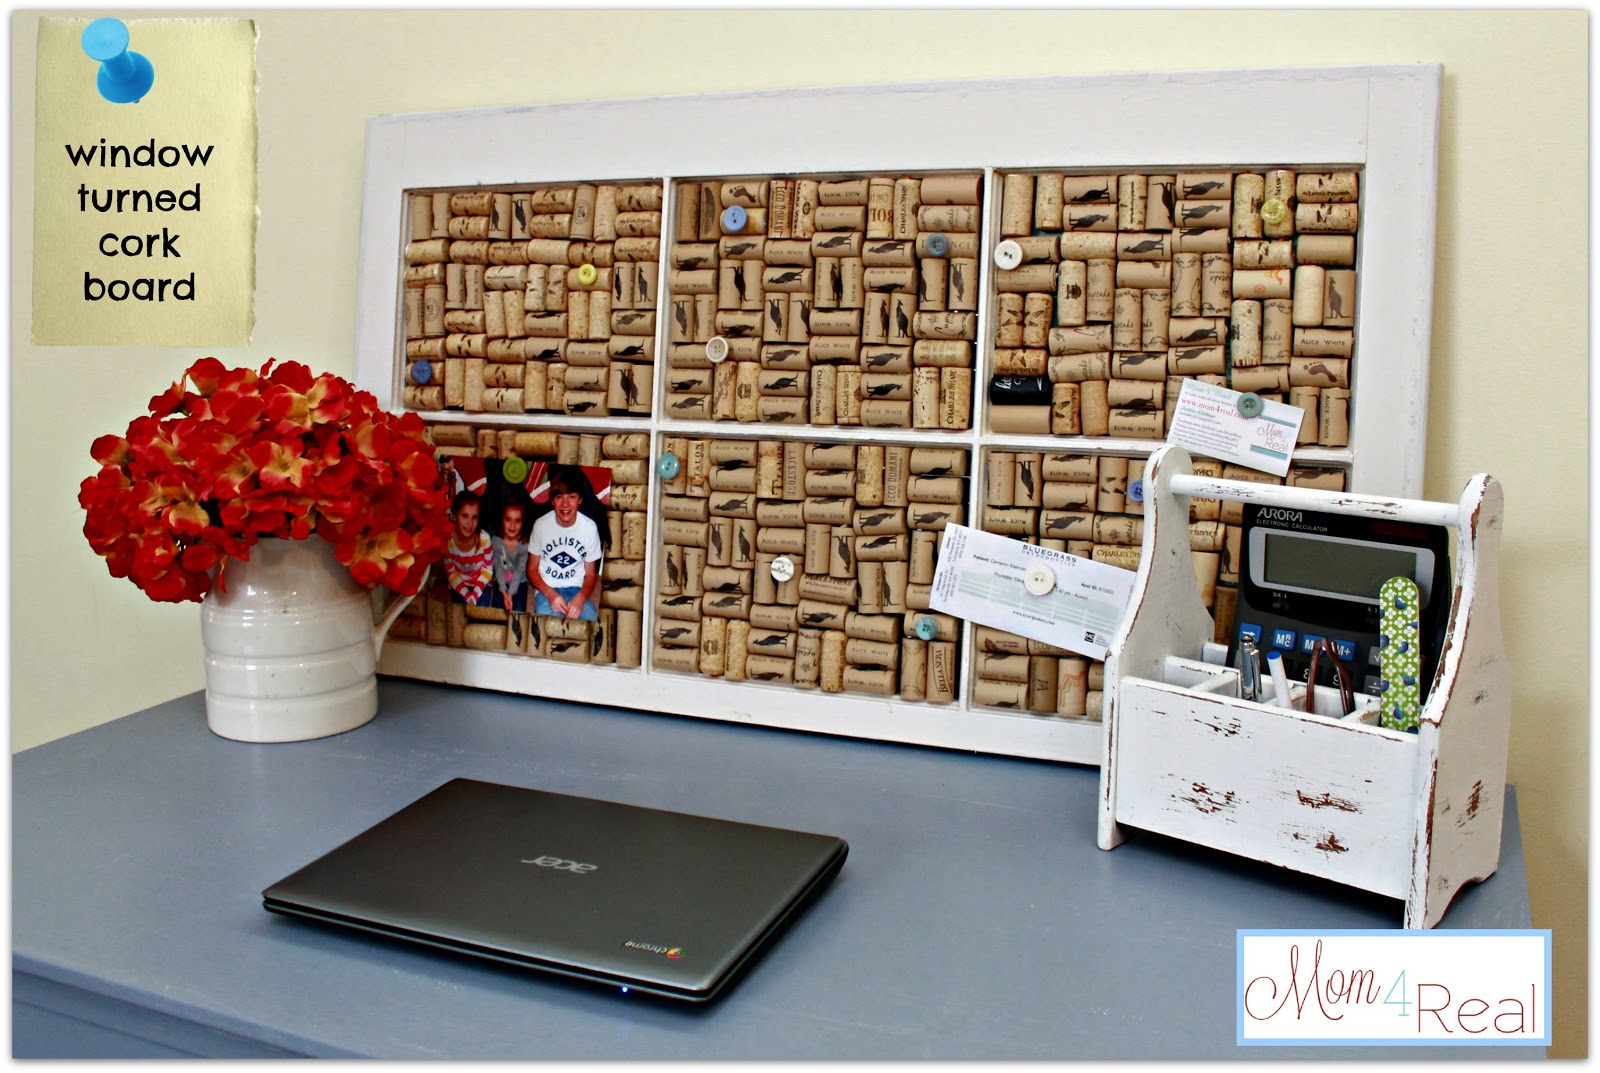 Old window turned wine cork board mom 4 real for How to decorate a cork board